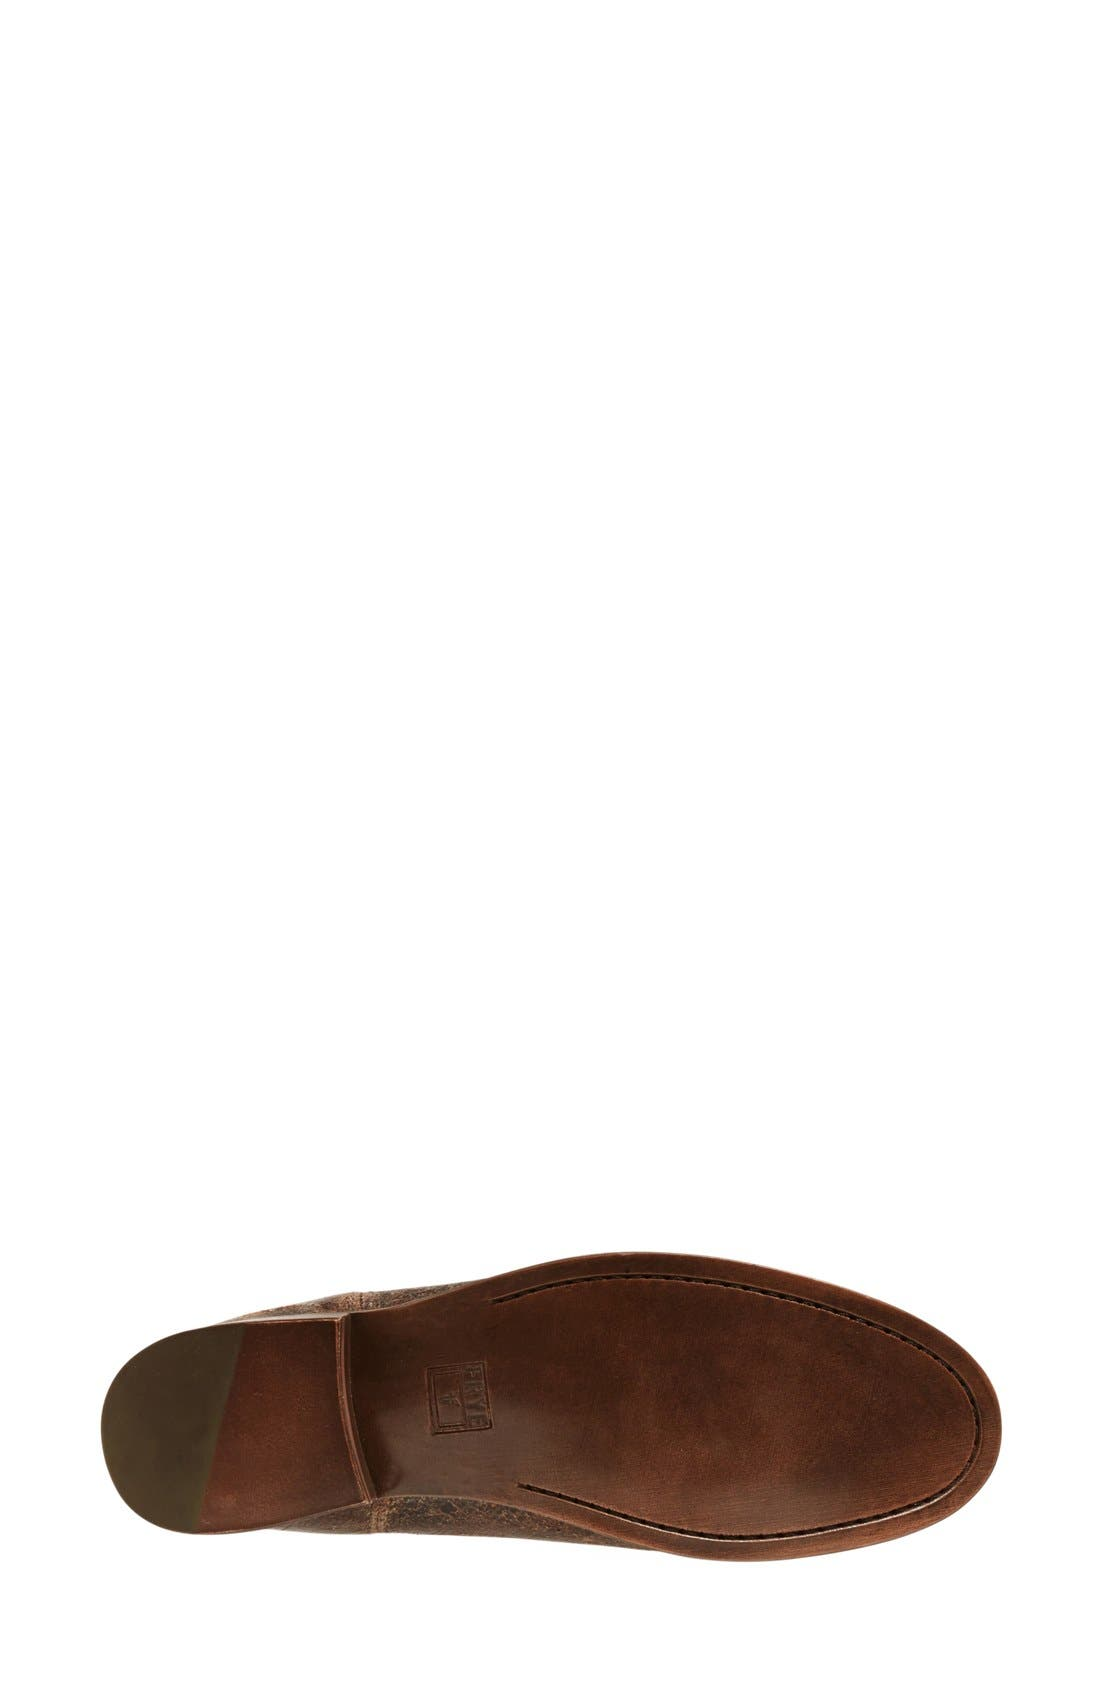 'Melissa Button' Leather Riding Boot,                             Alternate thumbnail 108, color,